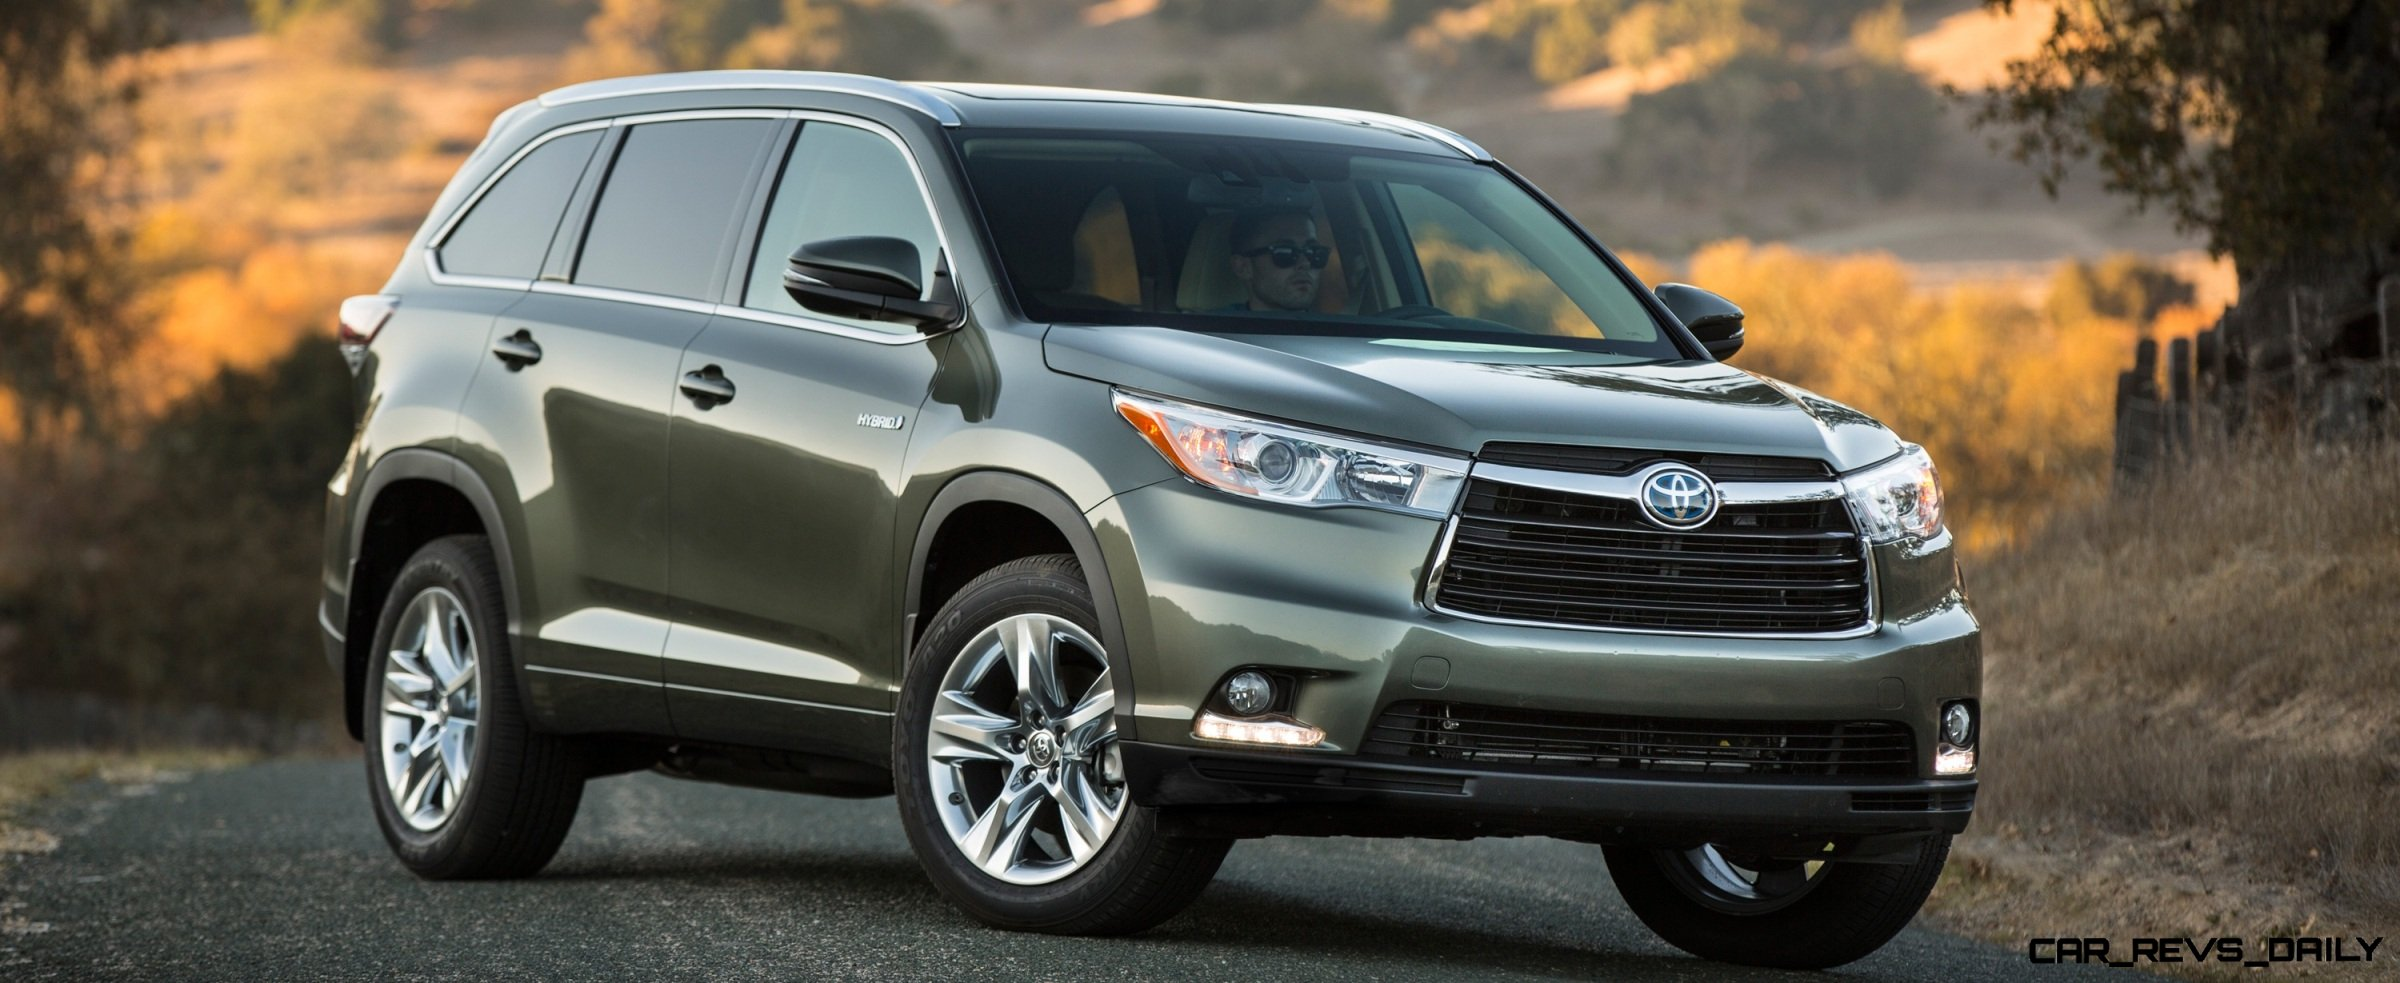 Carrevsdaily 2014 toyota highlander exterior photo14 Toyota highlander 2014 exterior